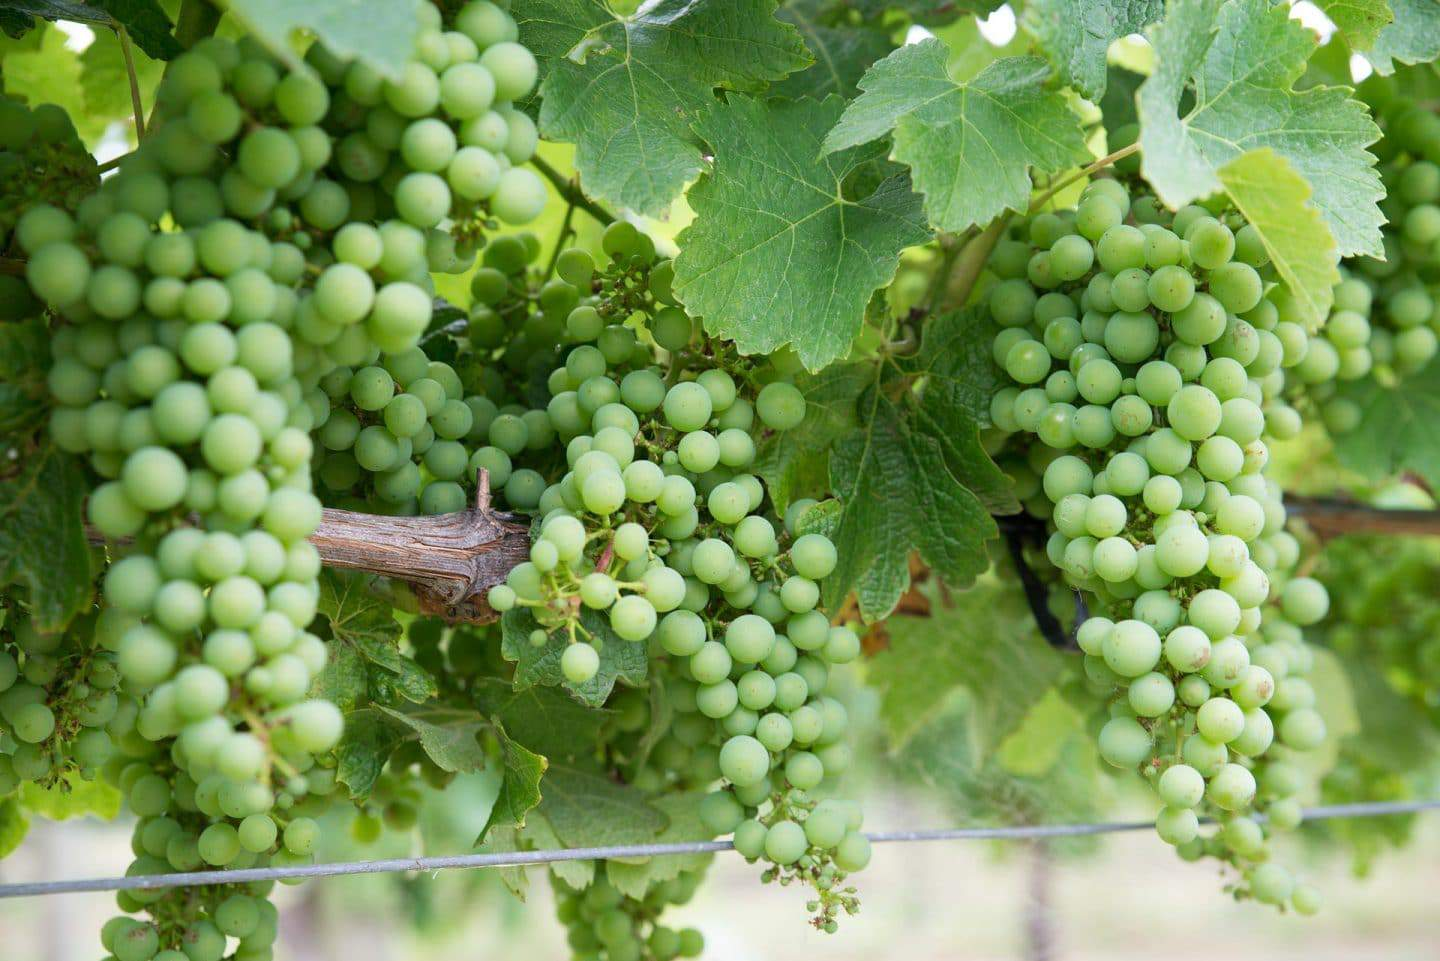 california chardonnay grapes on a vine